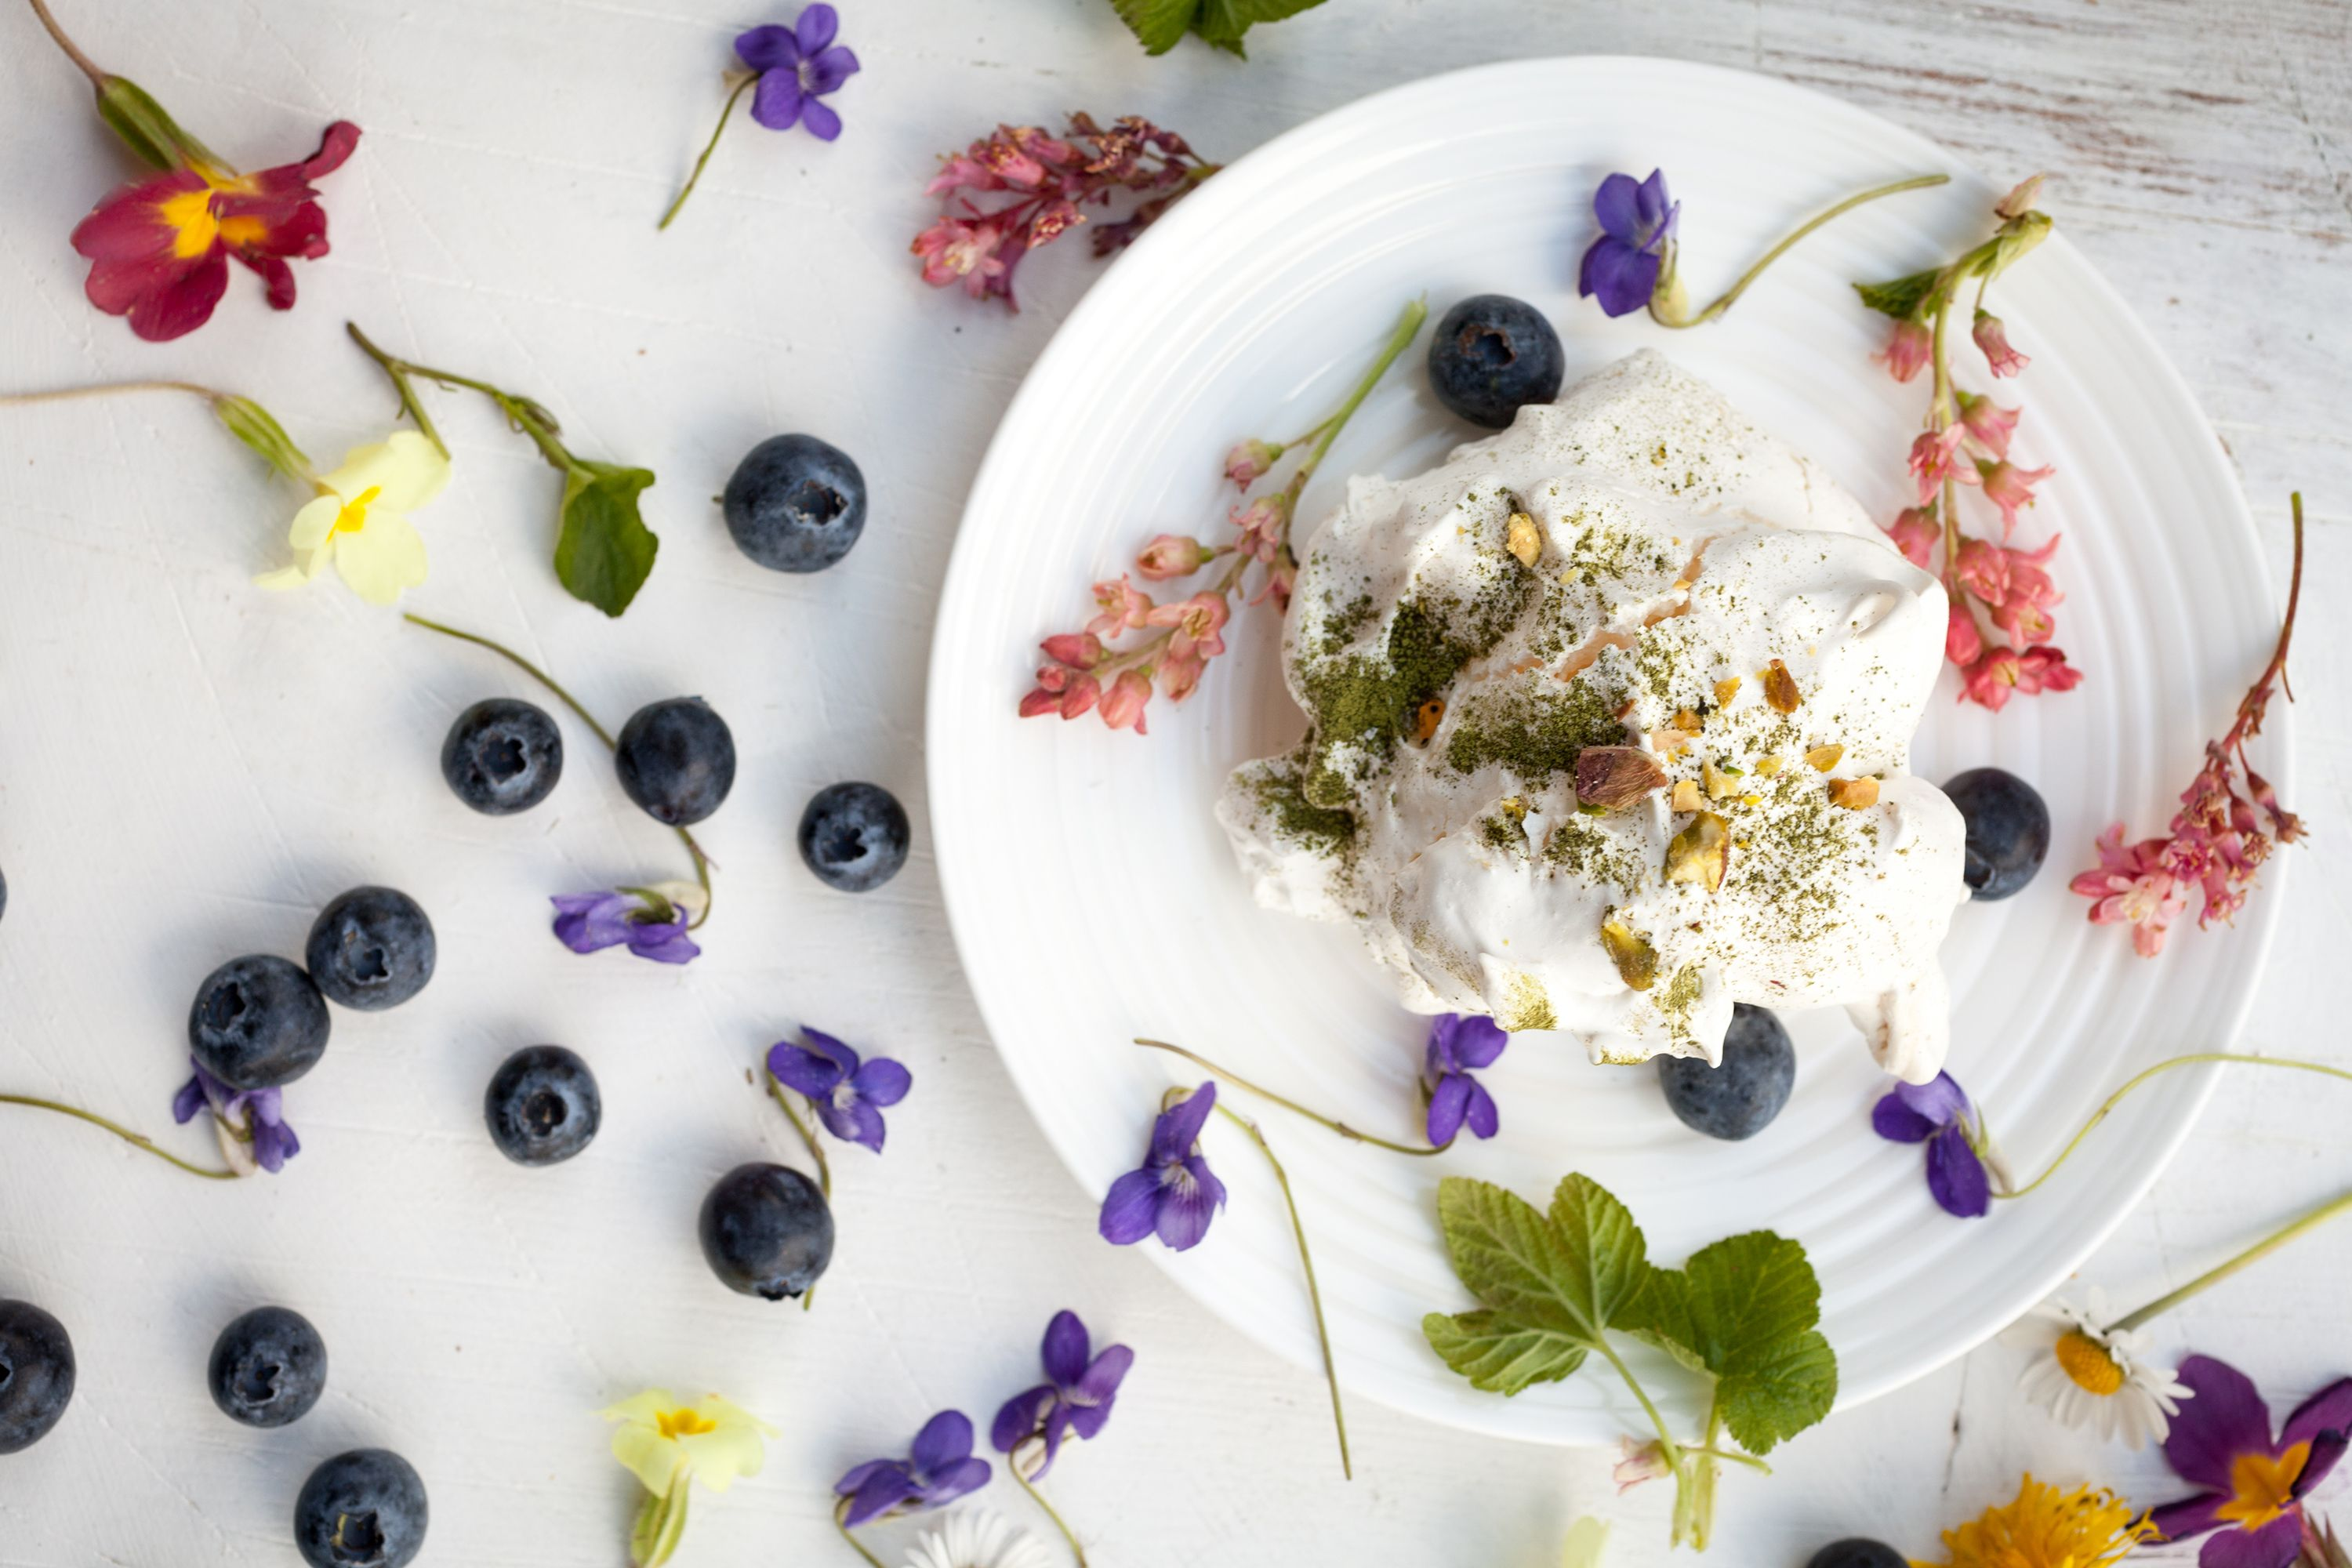 Edible flowers: How to prepare and use edible flowers in baking